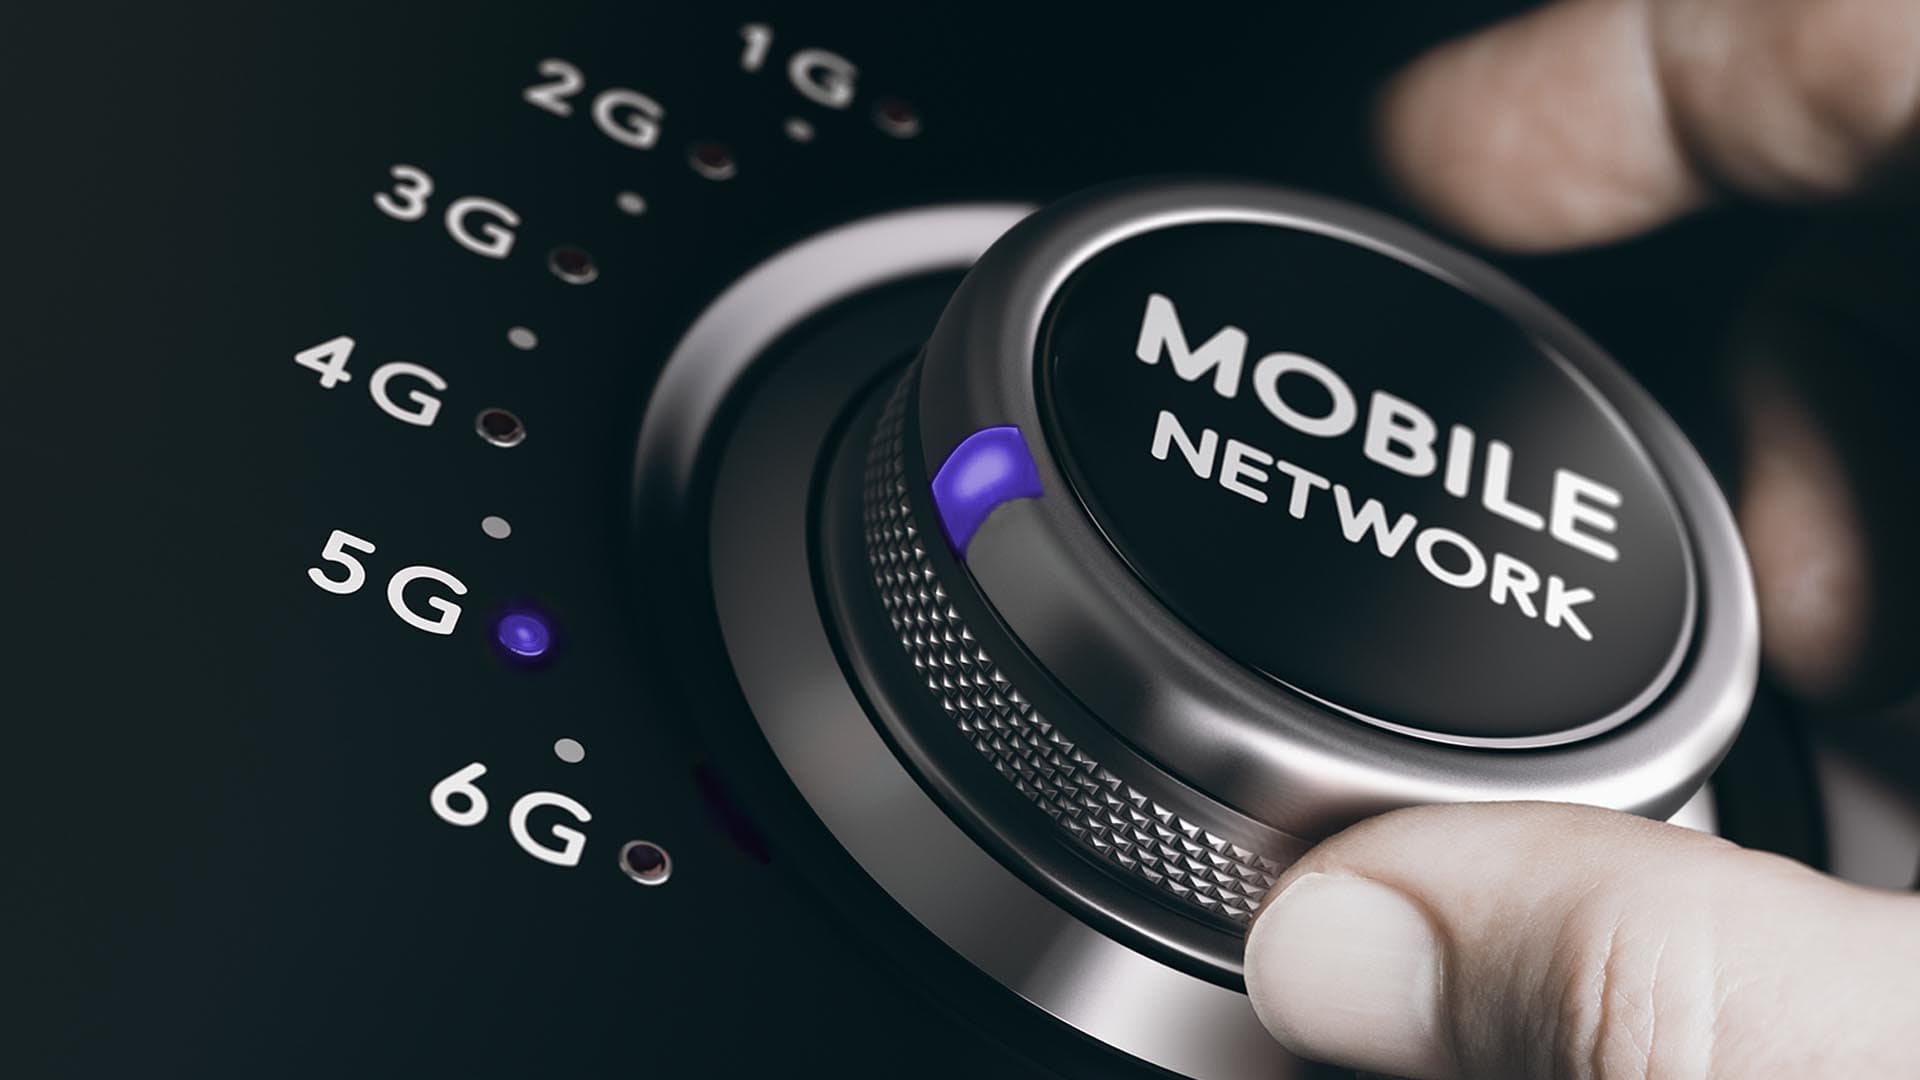 5G Committee of The Mobile Association